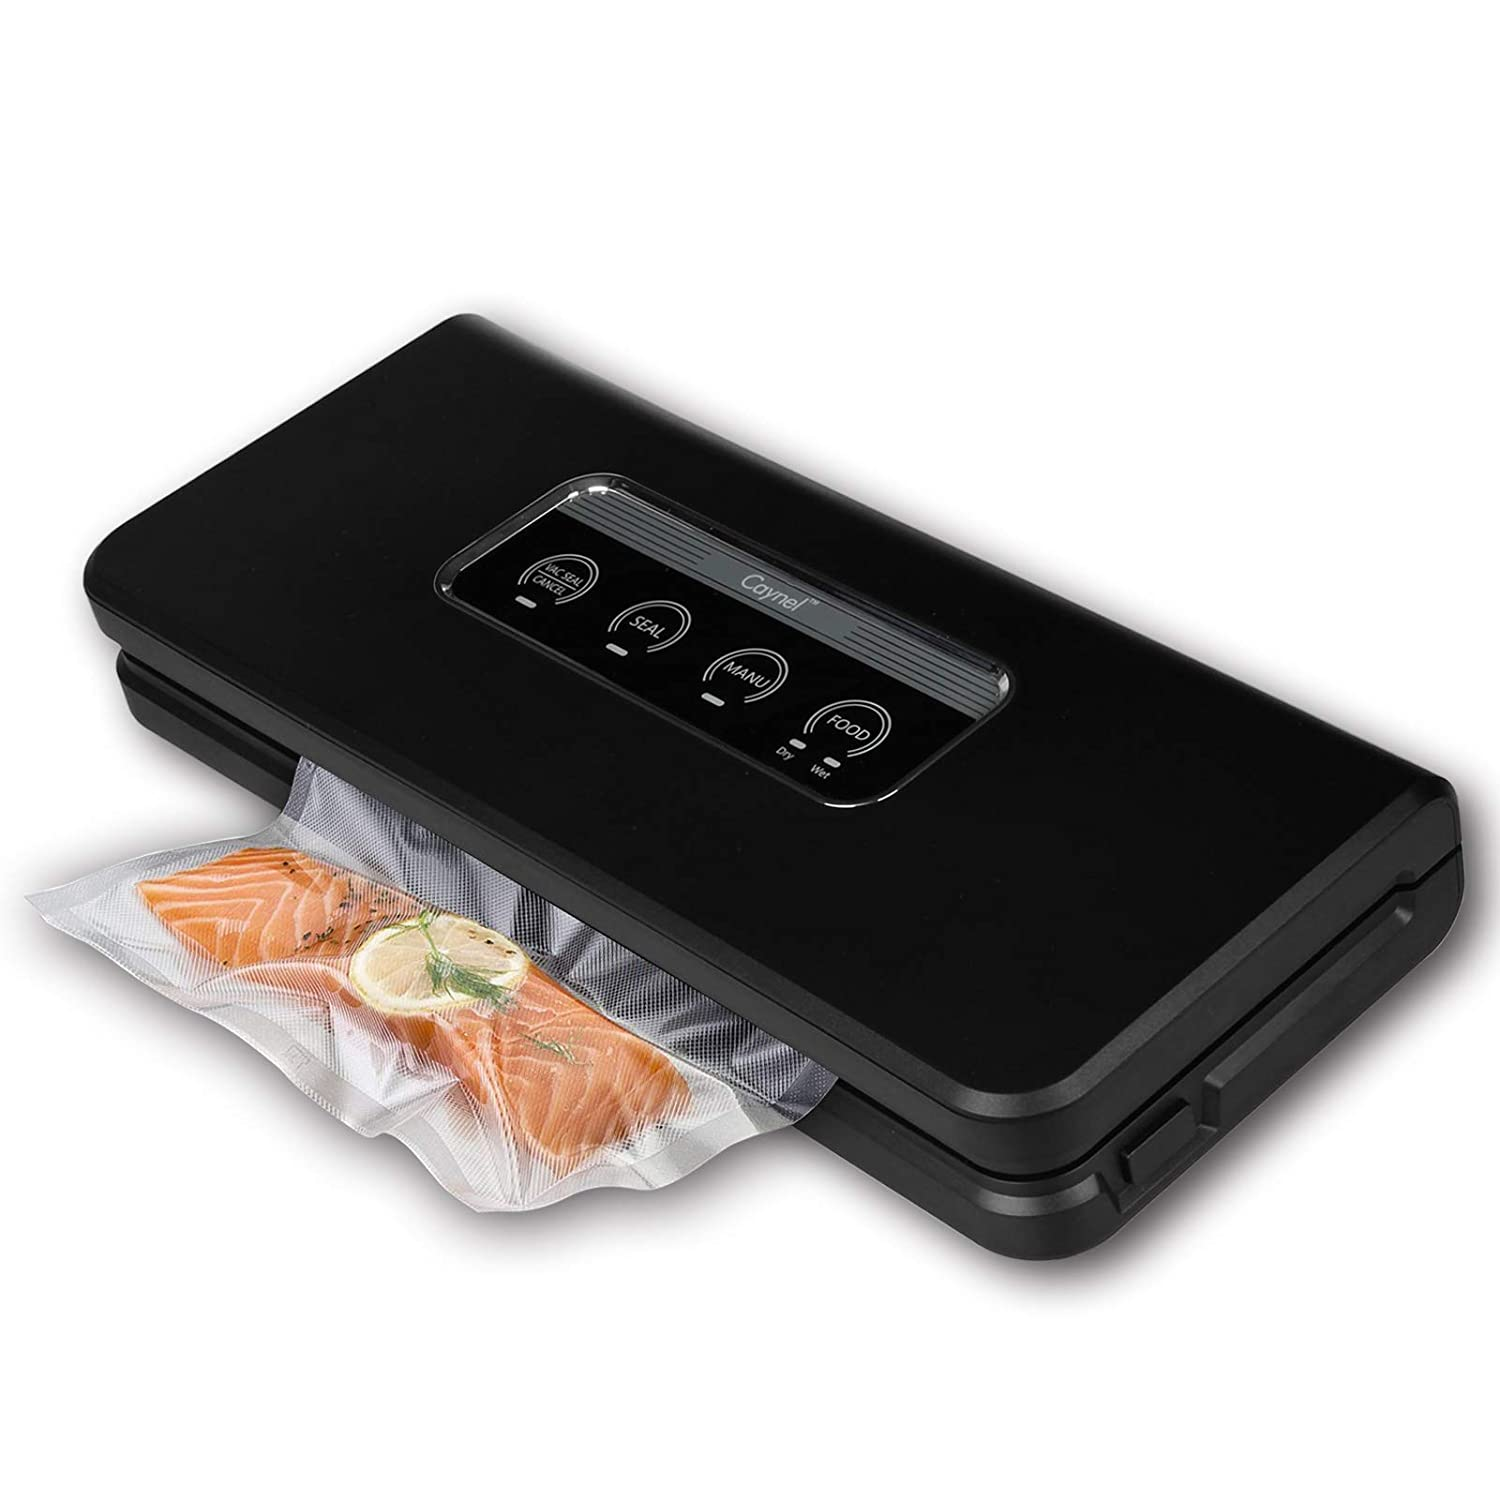 Caynel Automatic PRO Vacuum Sealer Machine. Moist Manual Modes Selectable, Starter Kit Included. Food Preservation Saver, Sous Vide. Black